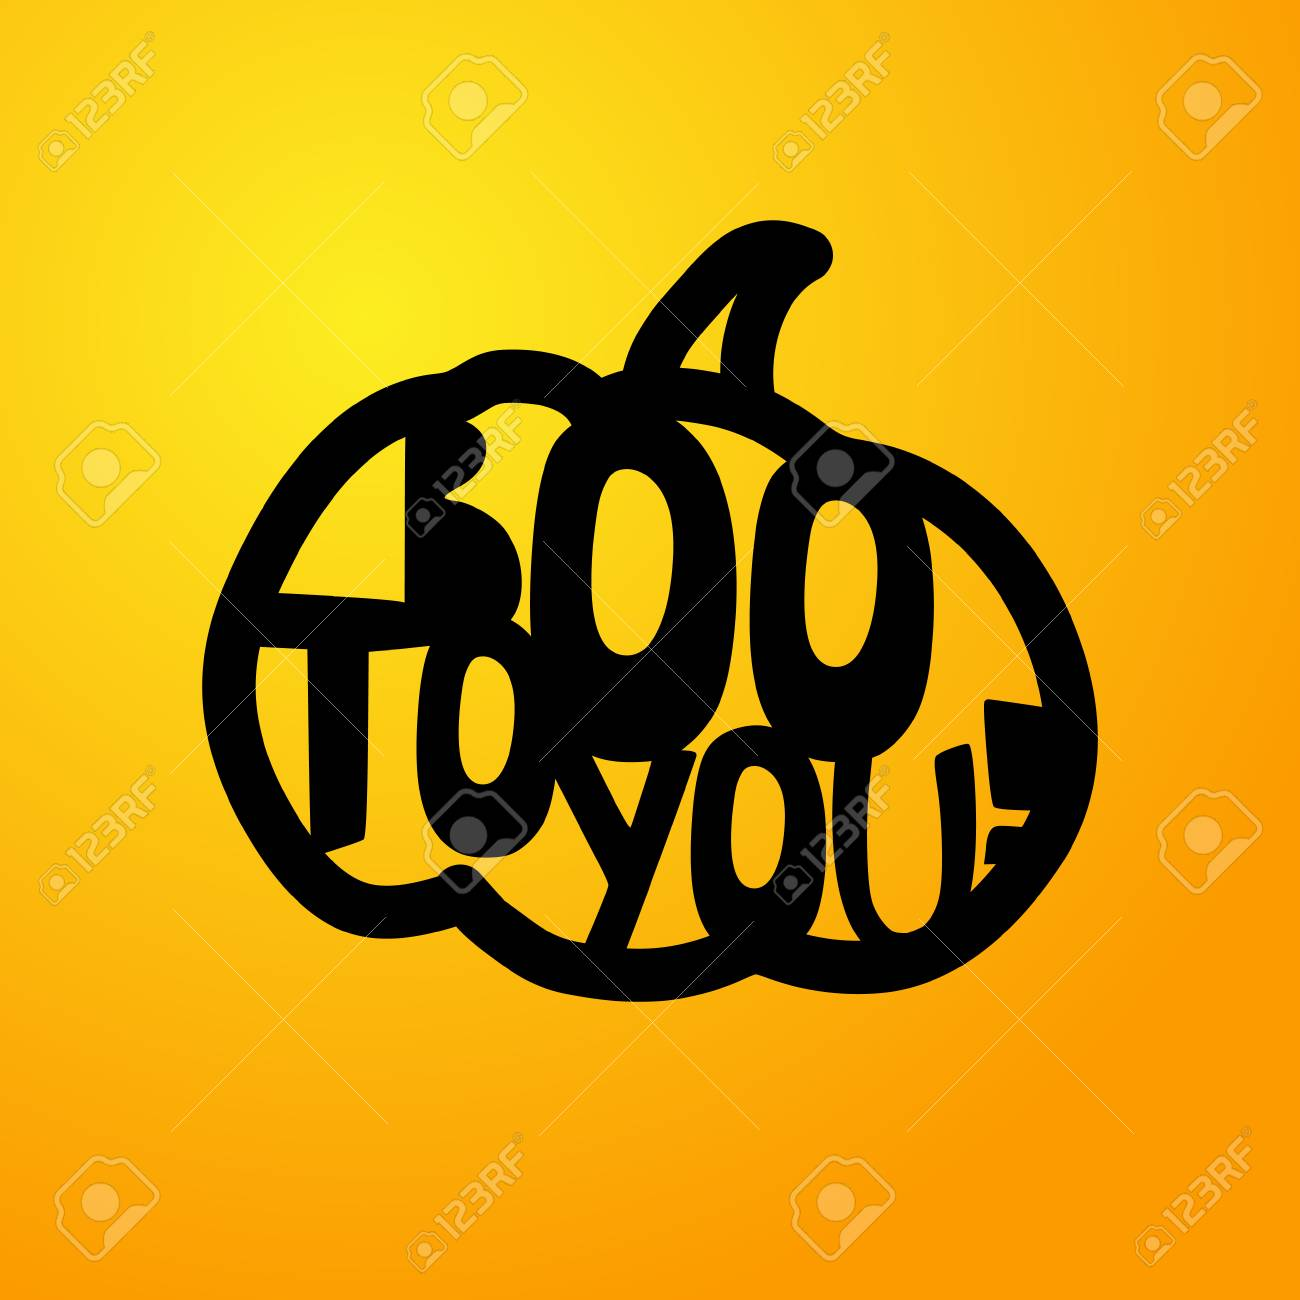 Halloween boo to you lettering laser cutting template for halloween boo to you lettering laser cutting template for greeting cards ornamented pronofoot35fo Gallery